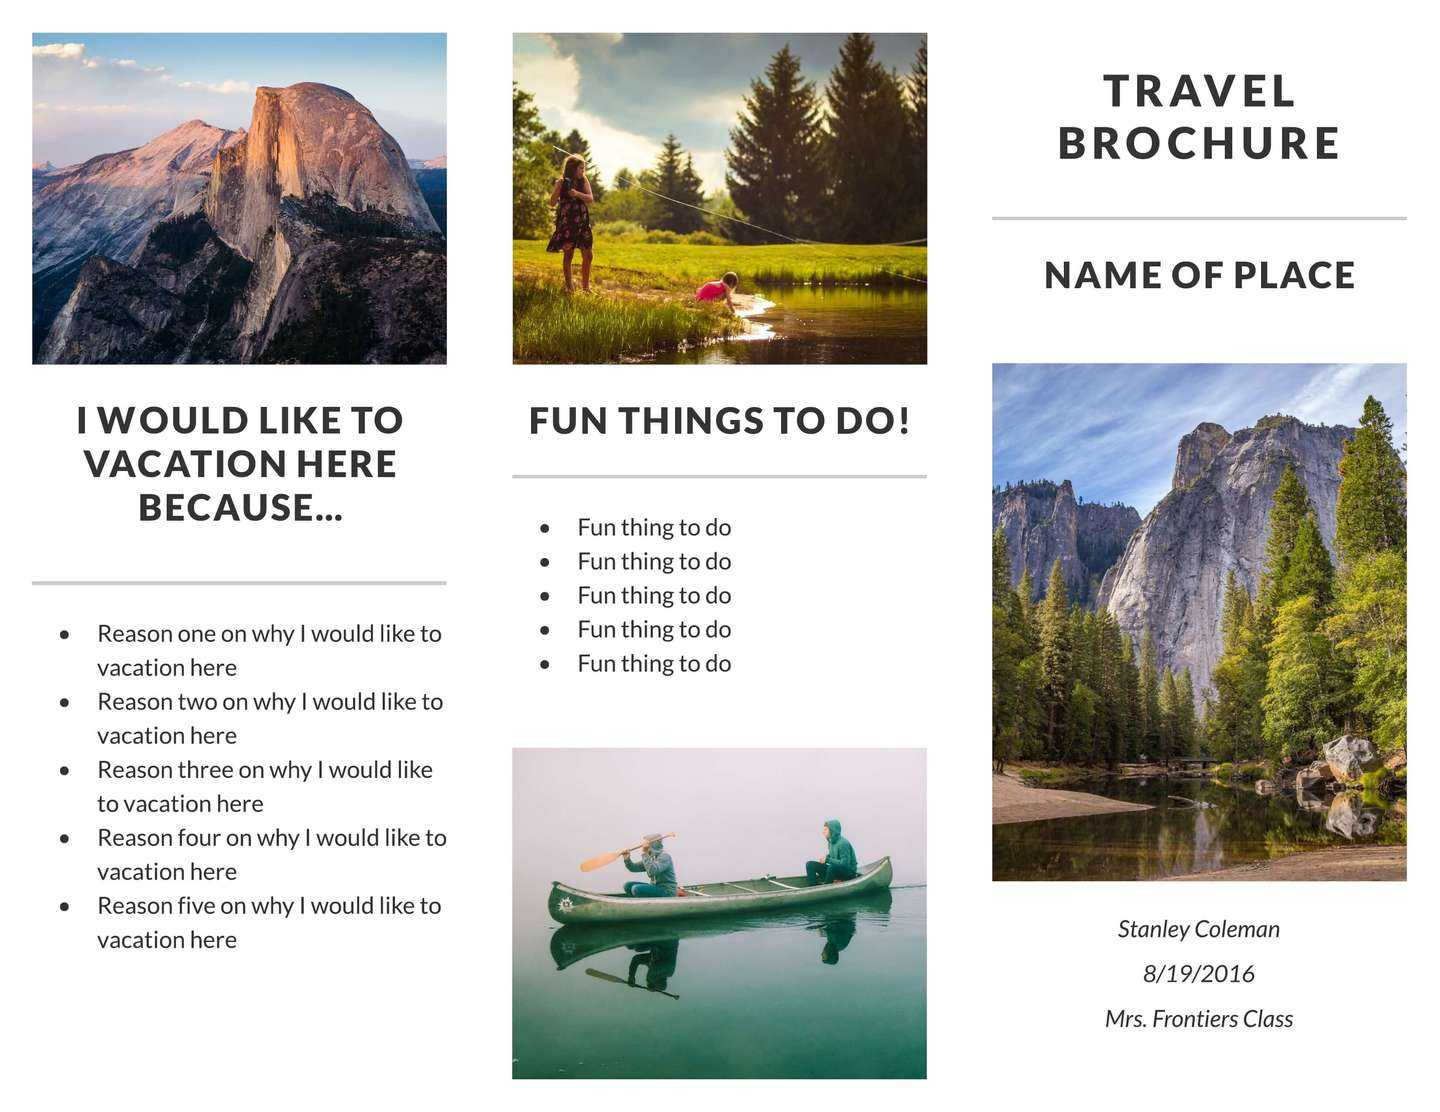 Free Travel Brochure Templates & Examples [8 Free Templates] Regarding Island Brochure Template